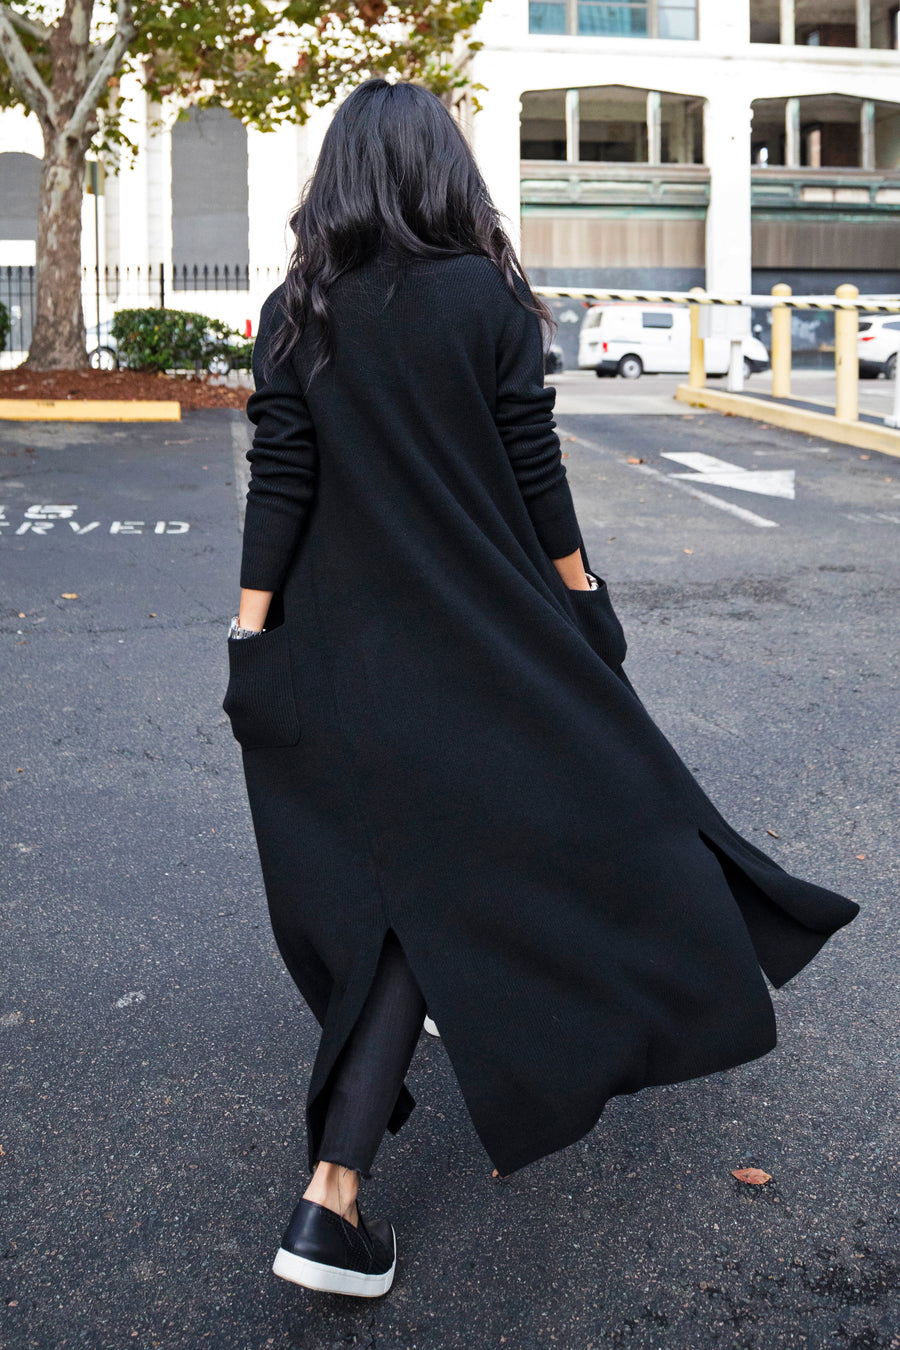 pine cashmere chelsea women's 100% pure cashmere long cardigan coat duster in black